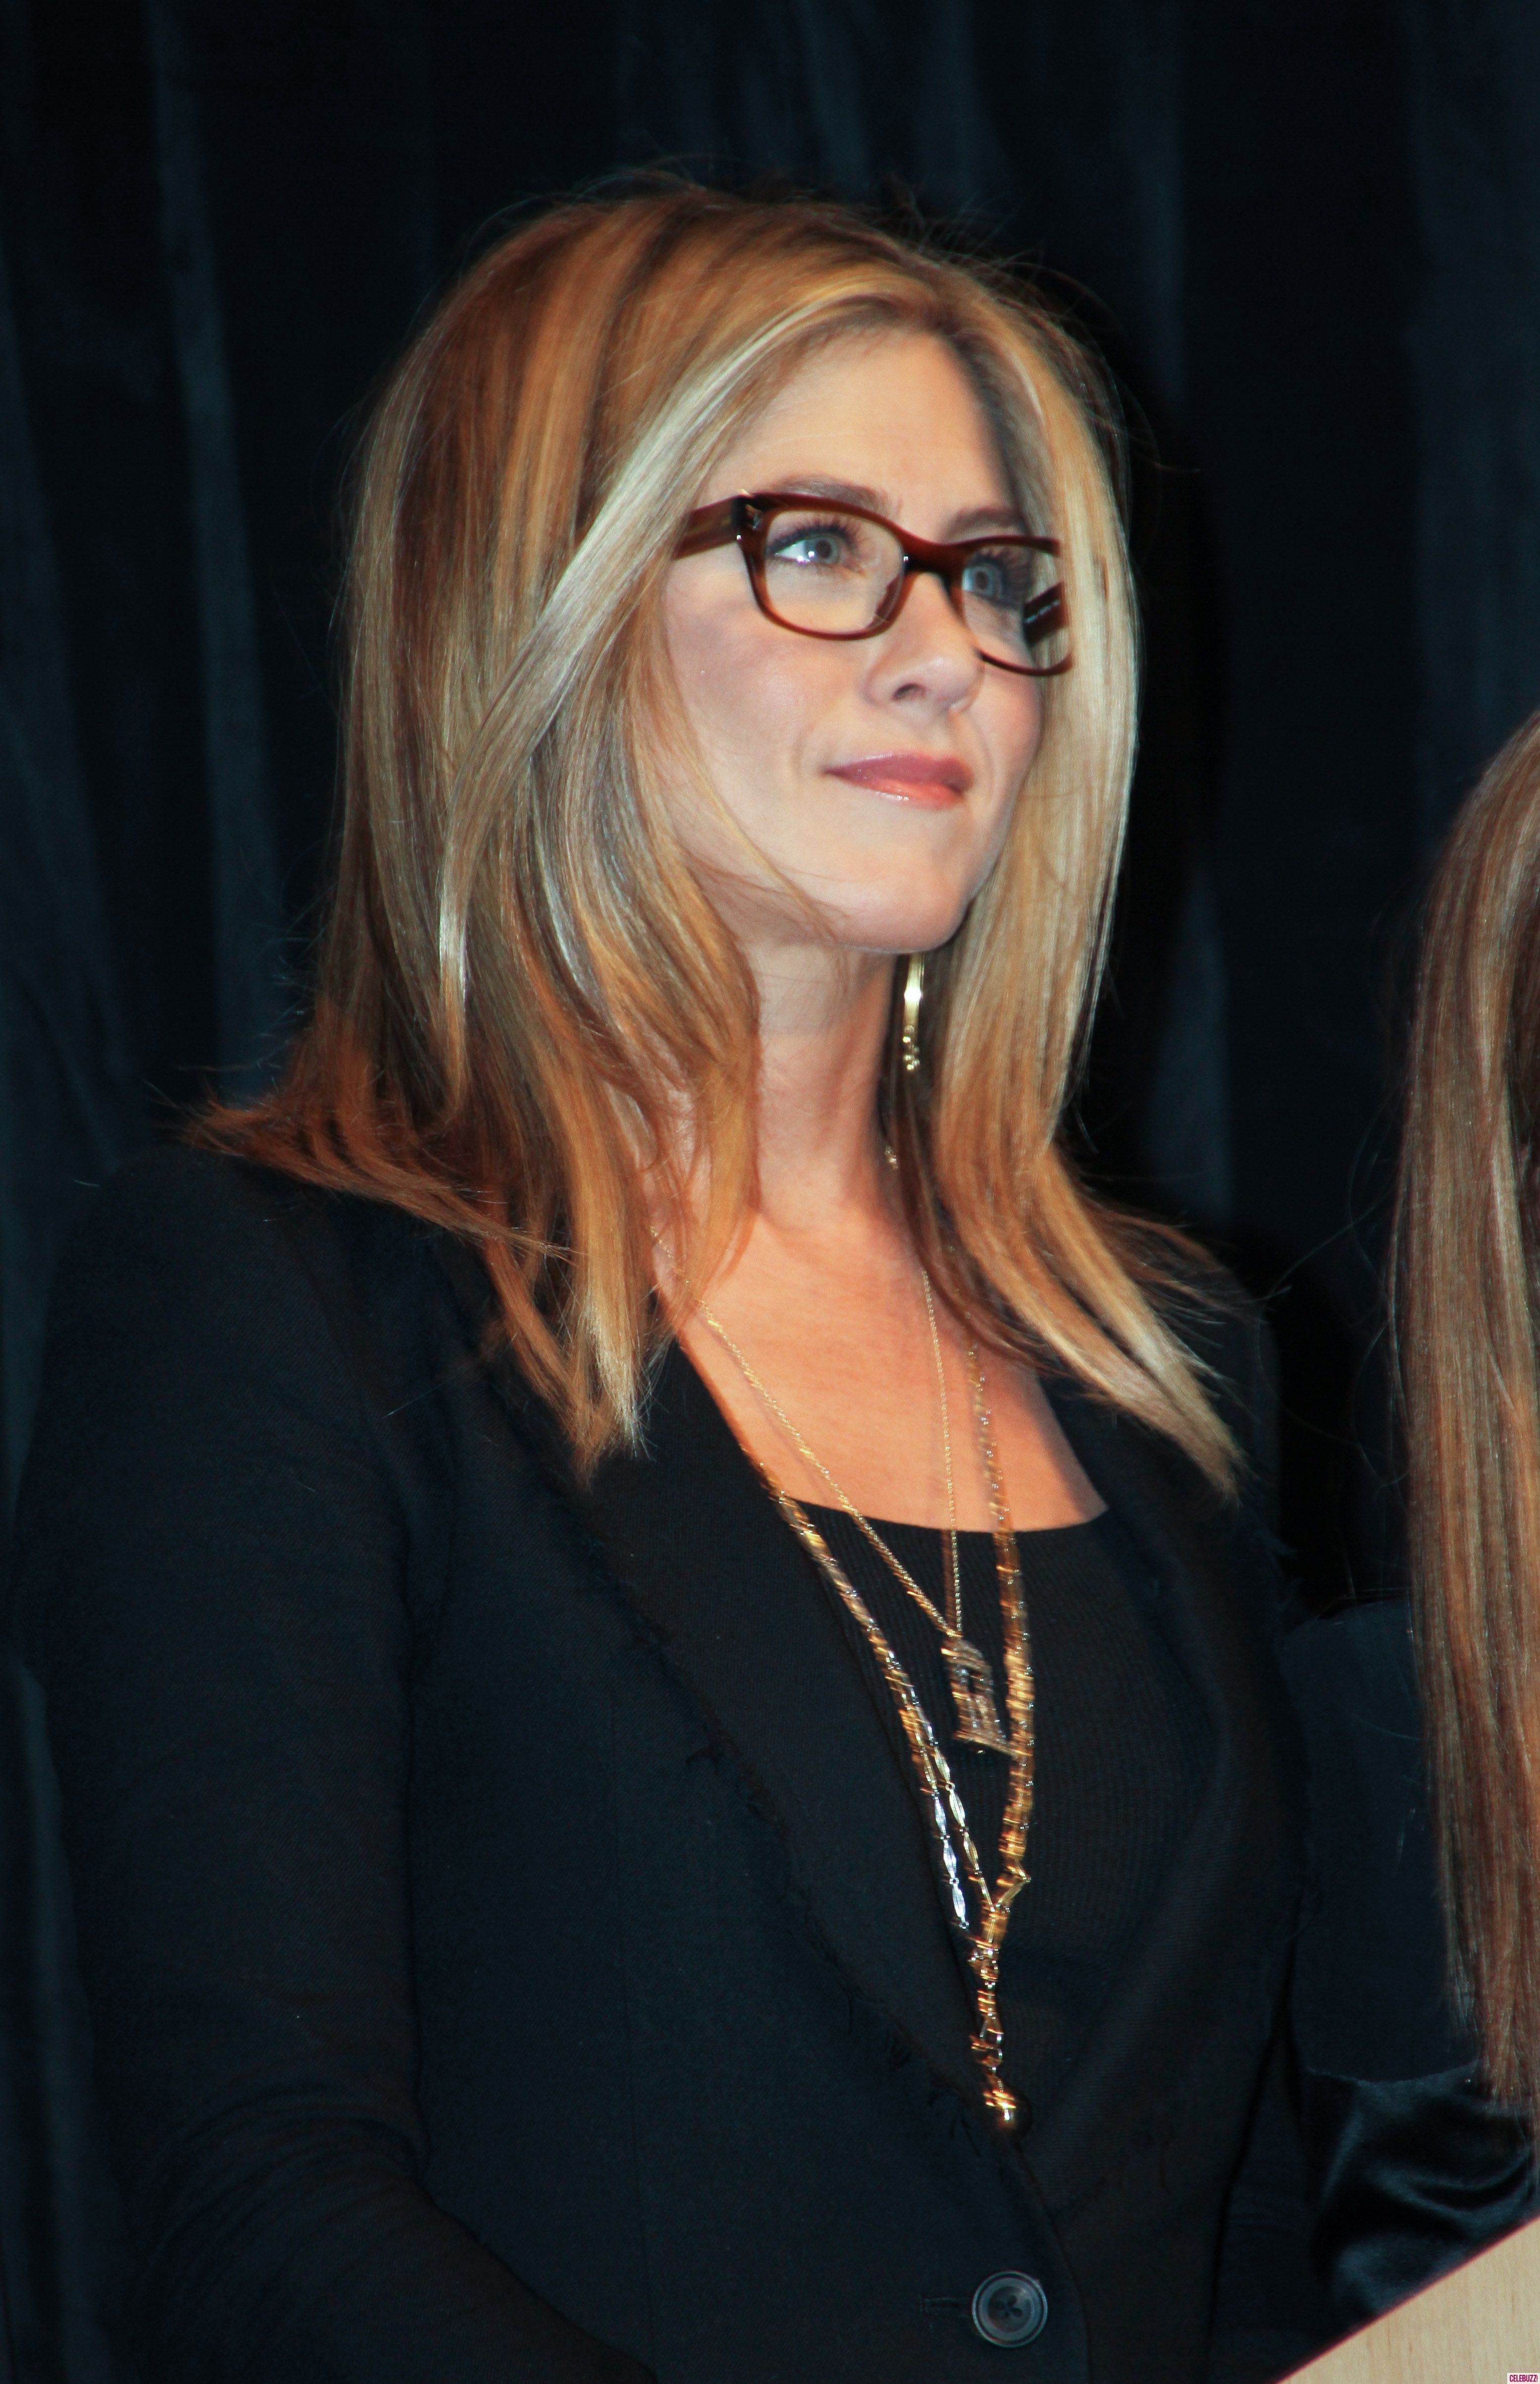 Davis Vision - Jennifer Aniston adds a touch of class to her look ...